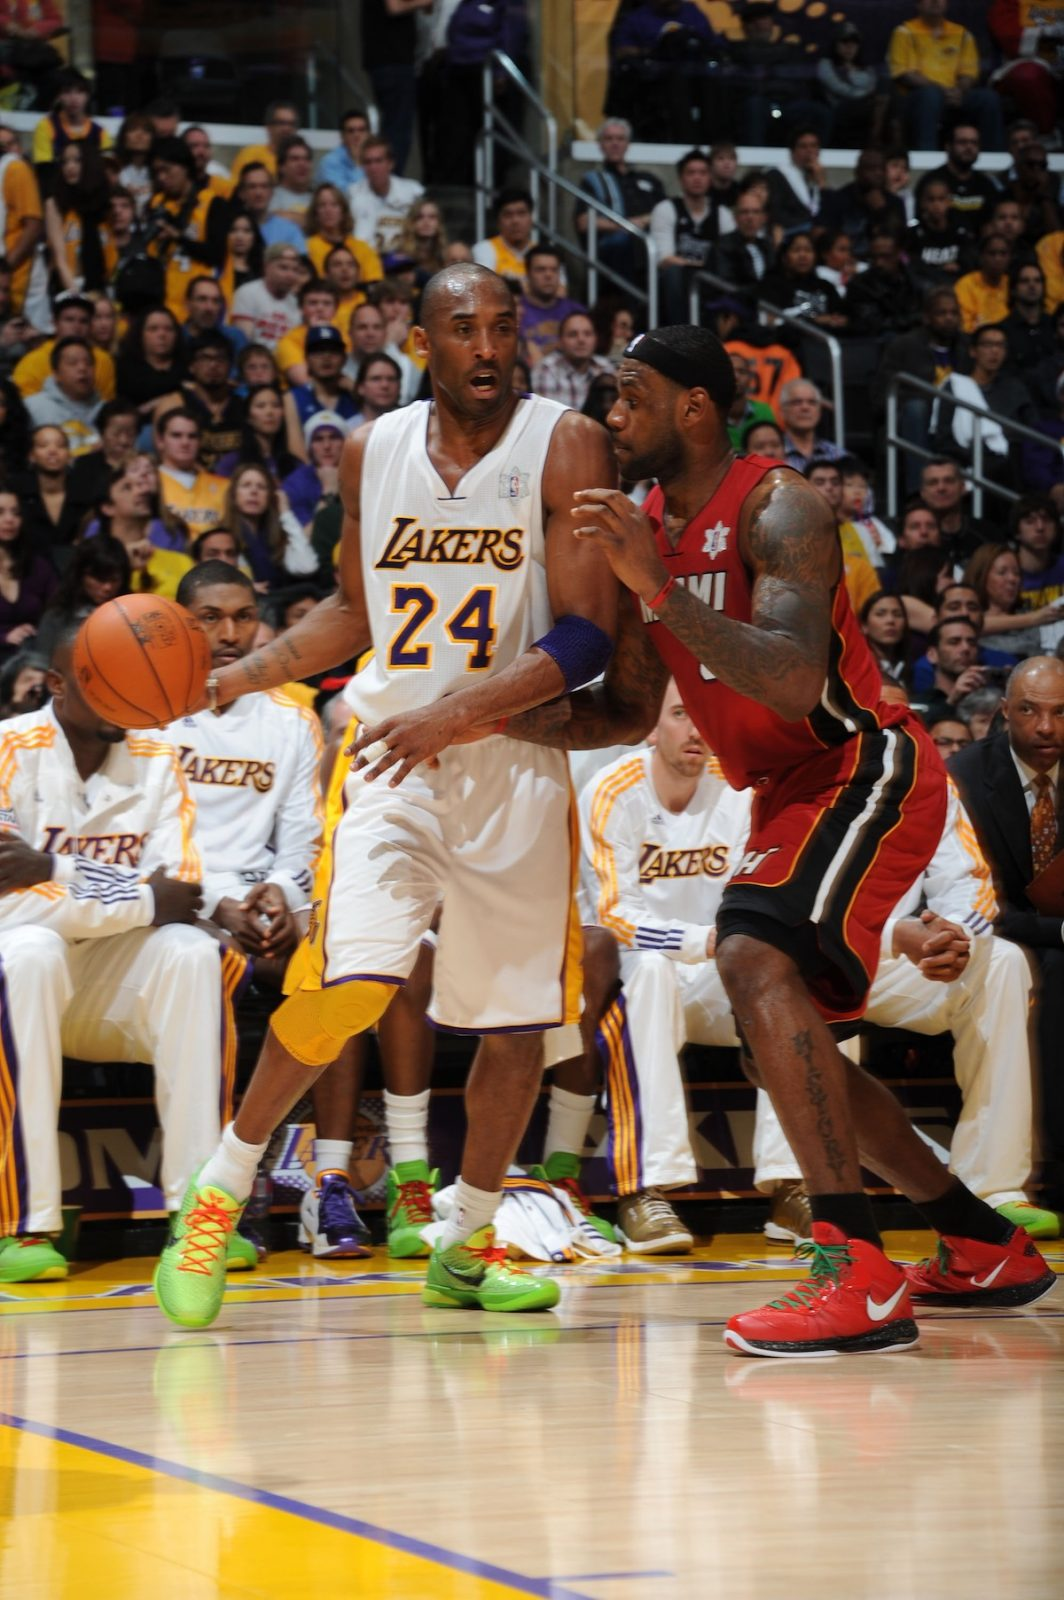 Lakers vs. Heat, Christmas Day 2010 - Andrew D. Bernstein/NBAE via Getty Images